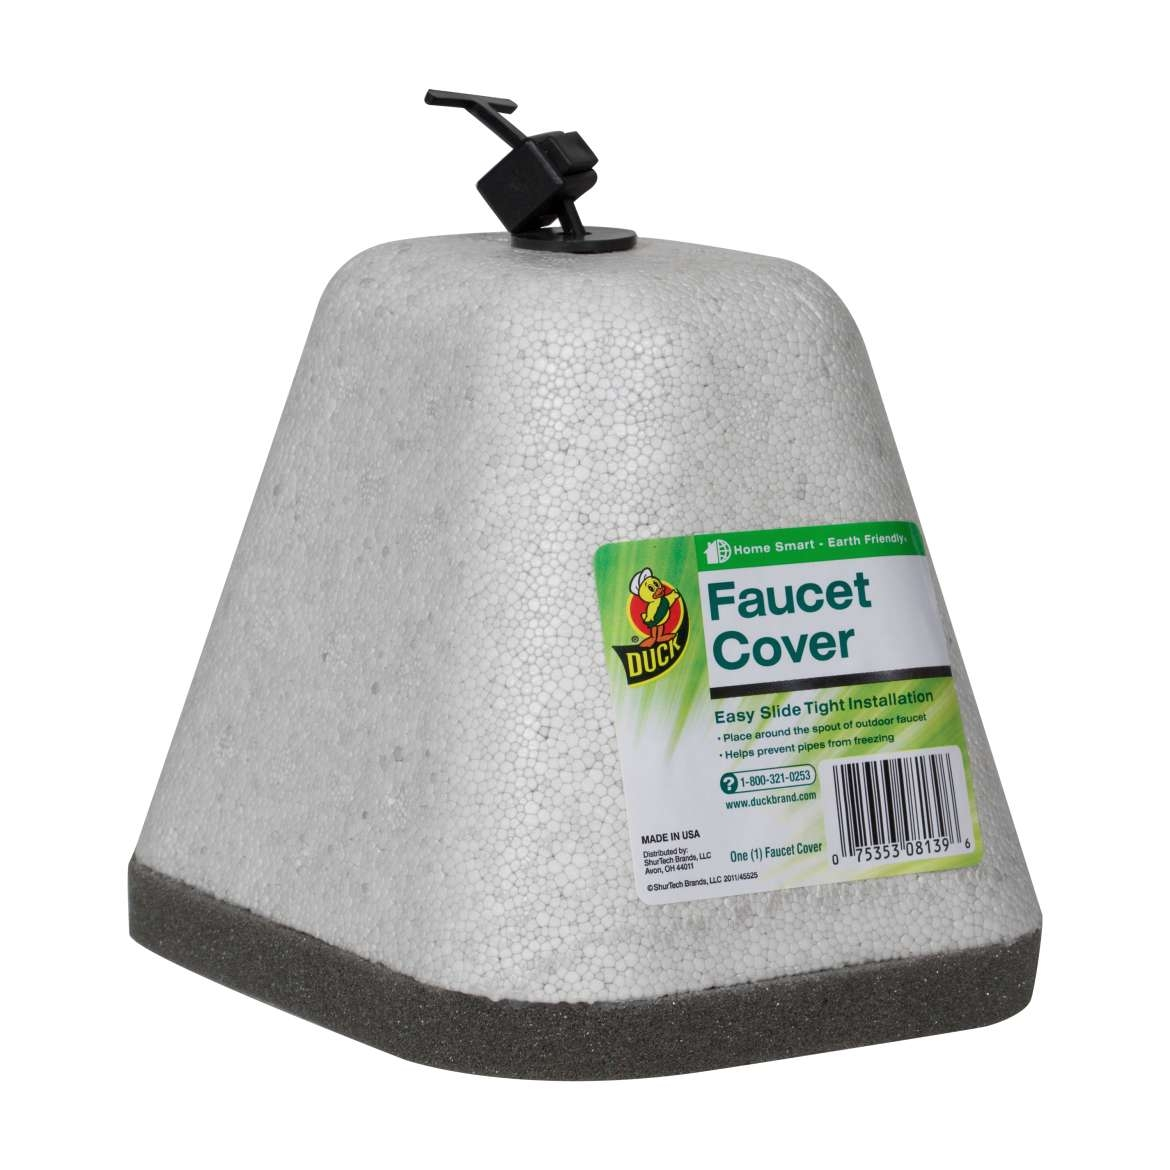 Ideas, pyramid faucet cover 1pk walmart for proportions 1170 x 1170 jpeg.